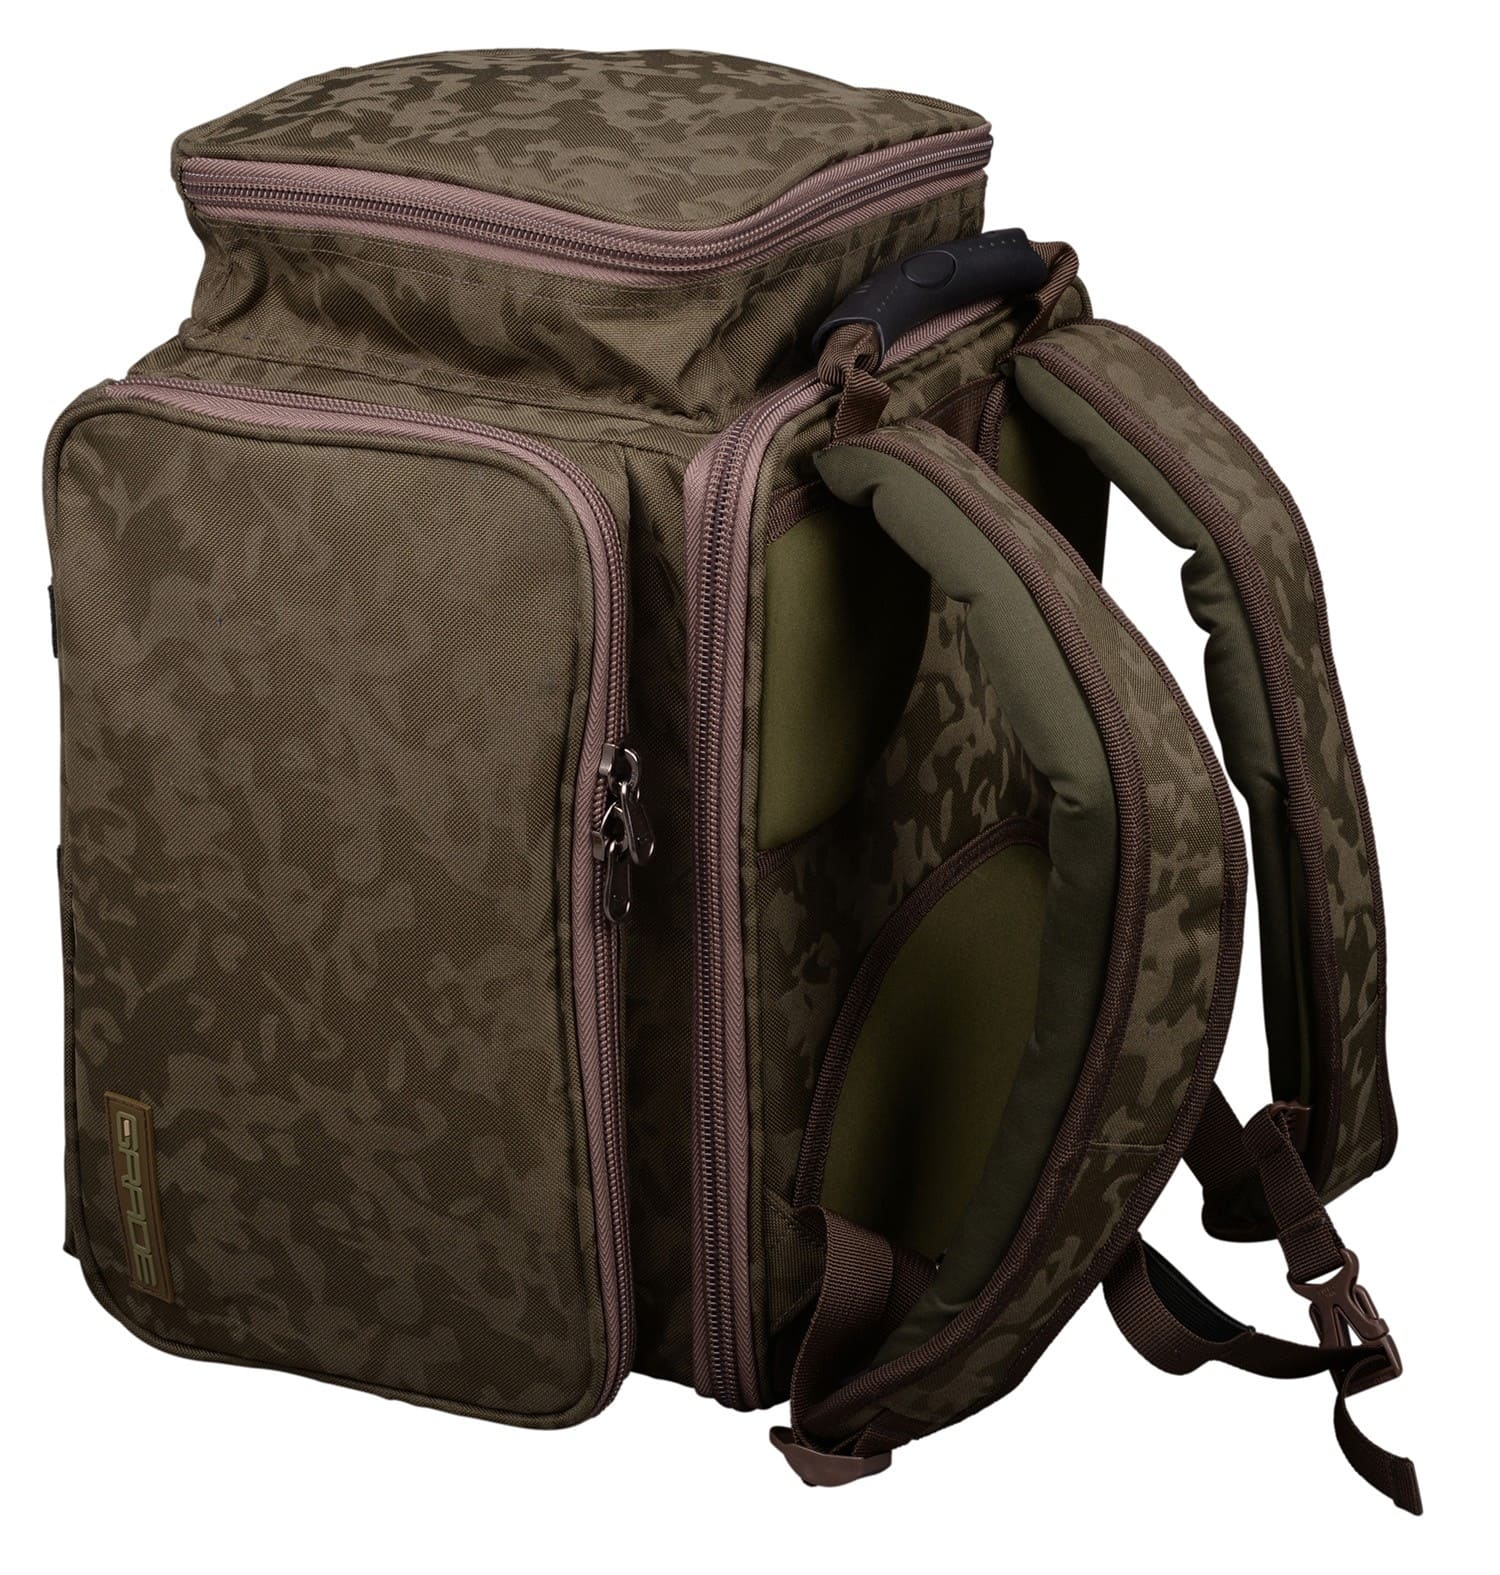 Spro Grade Compact Backpack